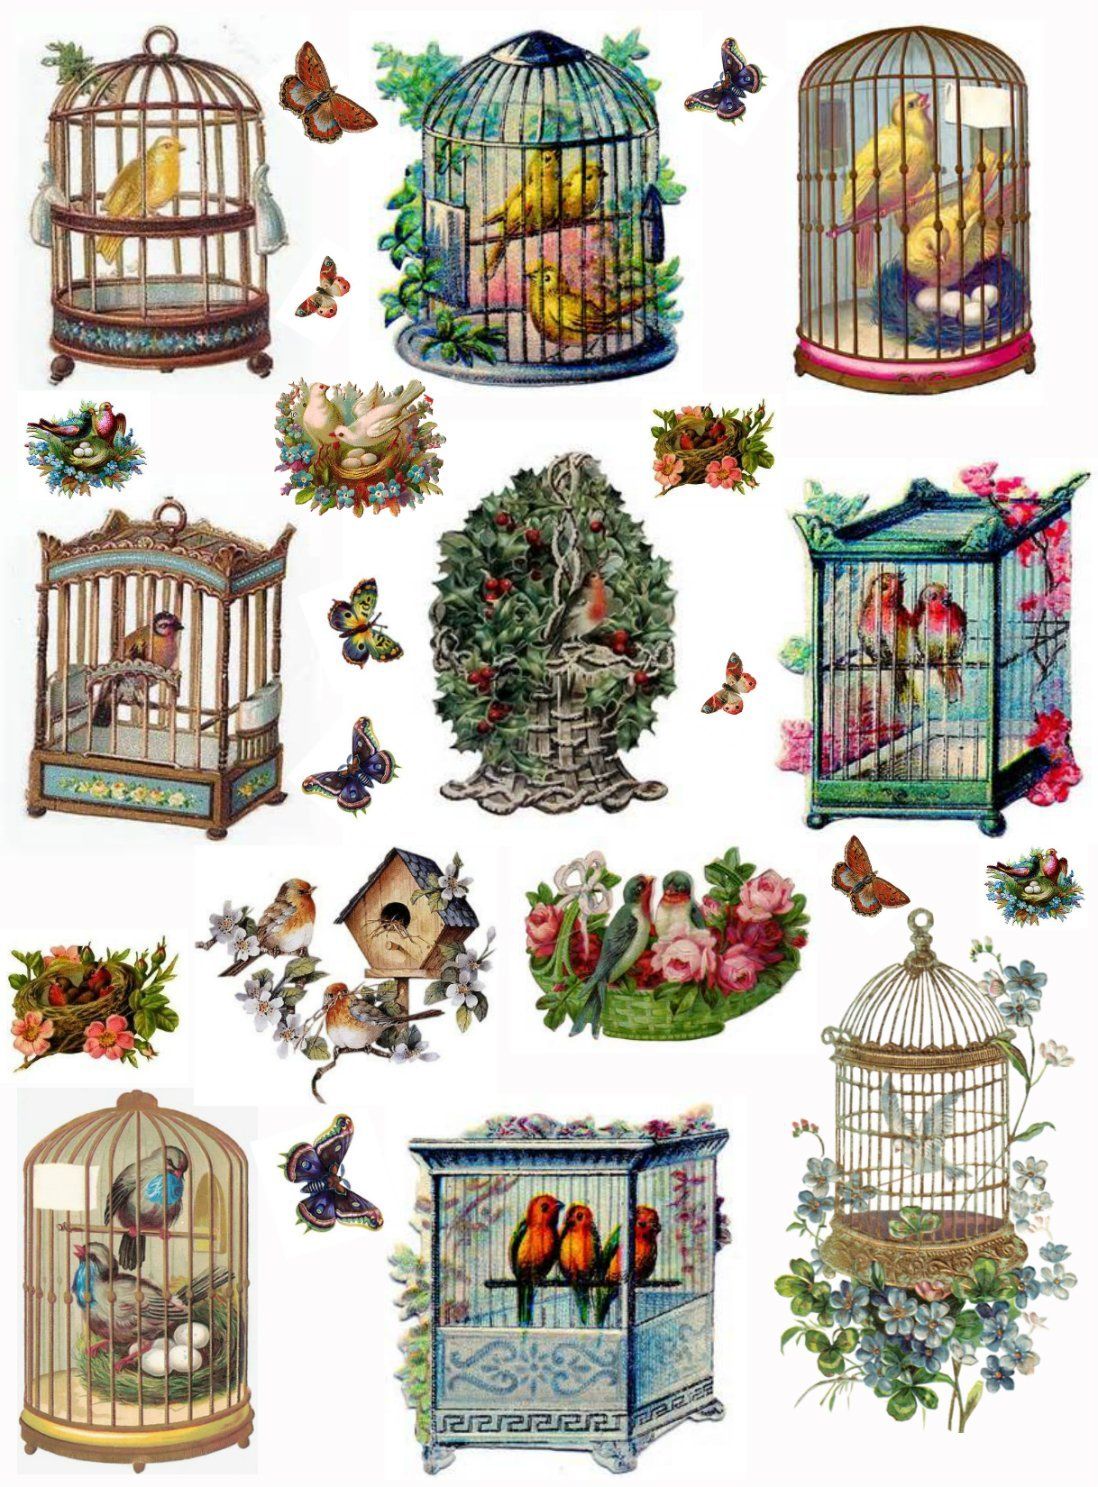 Vintage Victorian Birdcages Collage Sheet Art Images for Decoupage, Scrapbooking, Jewelry Making Paper Moon Media